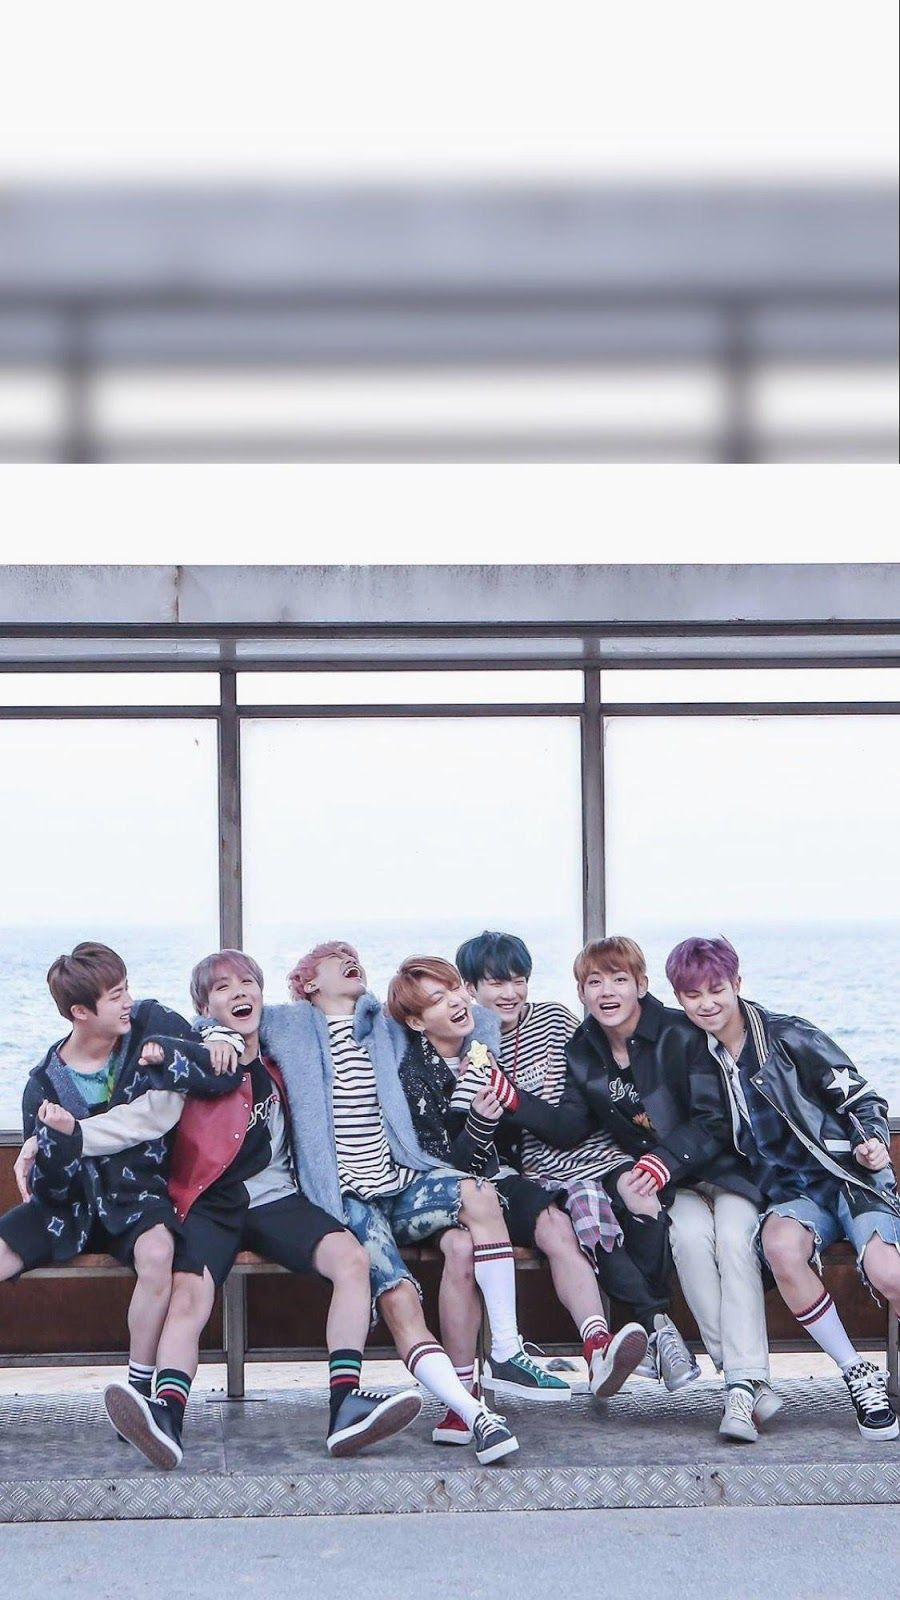 Bts Members Latest Wallpaper Collection Thewaofam Wallpaper In 2020 Bts Wallpaper Bts Wallpaper Desktop Bts Backgrounds